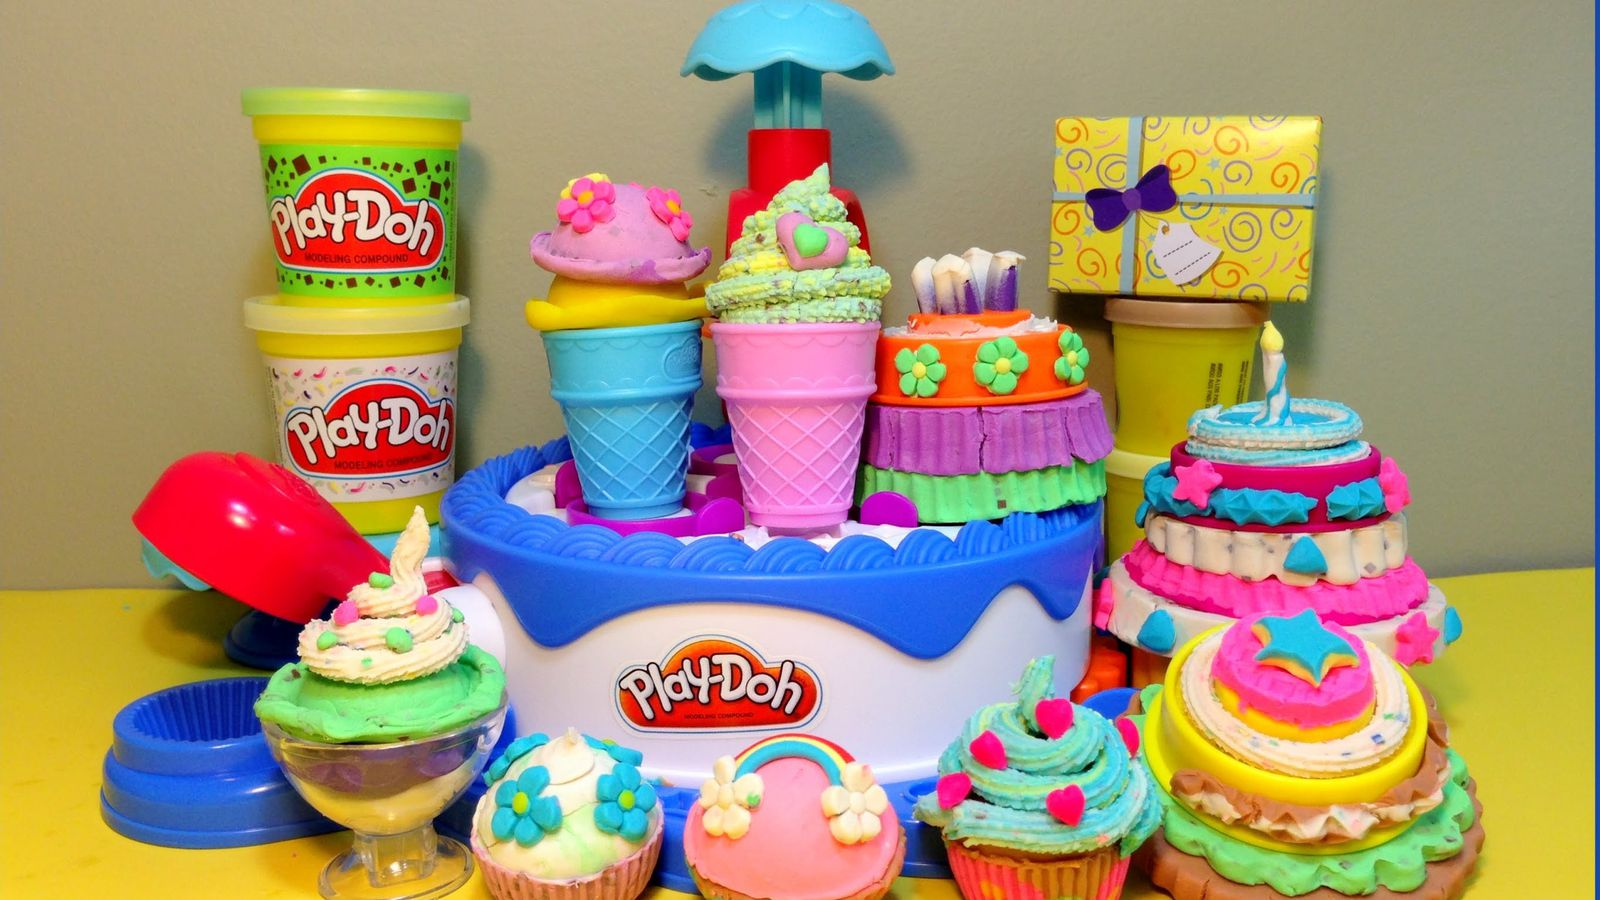 Play Doh Cake And Ice Cream Confections Price